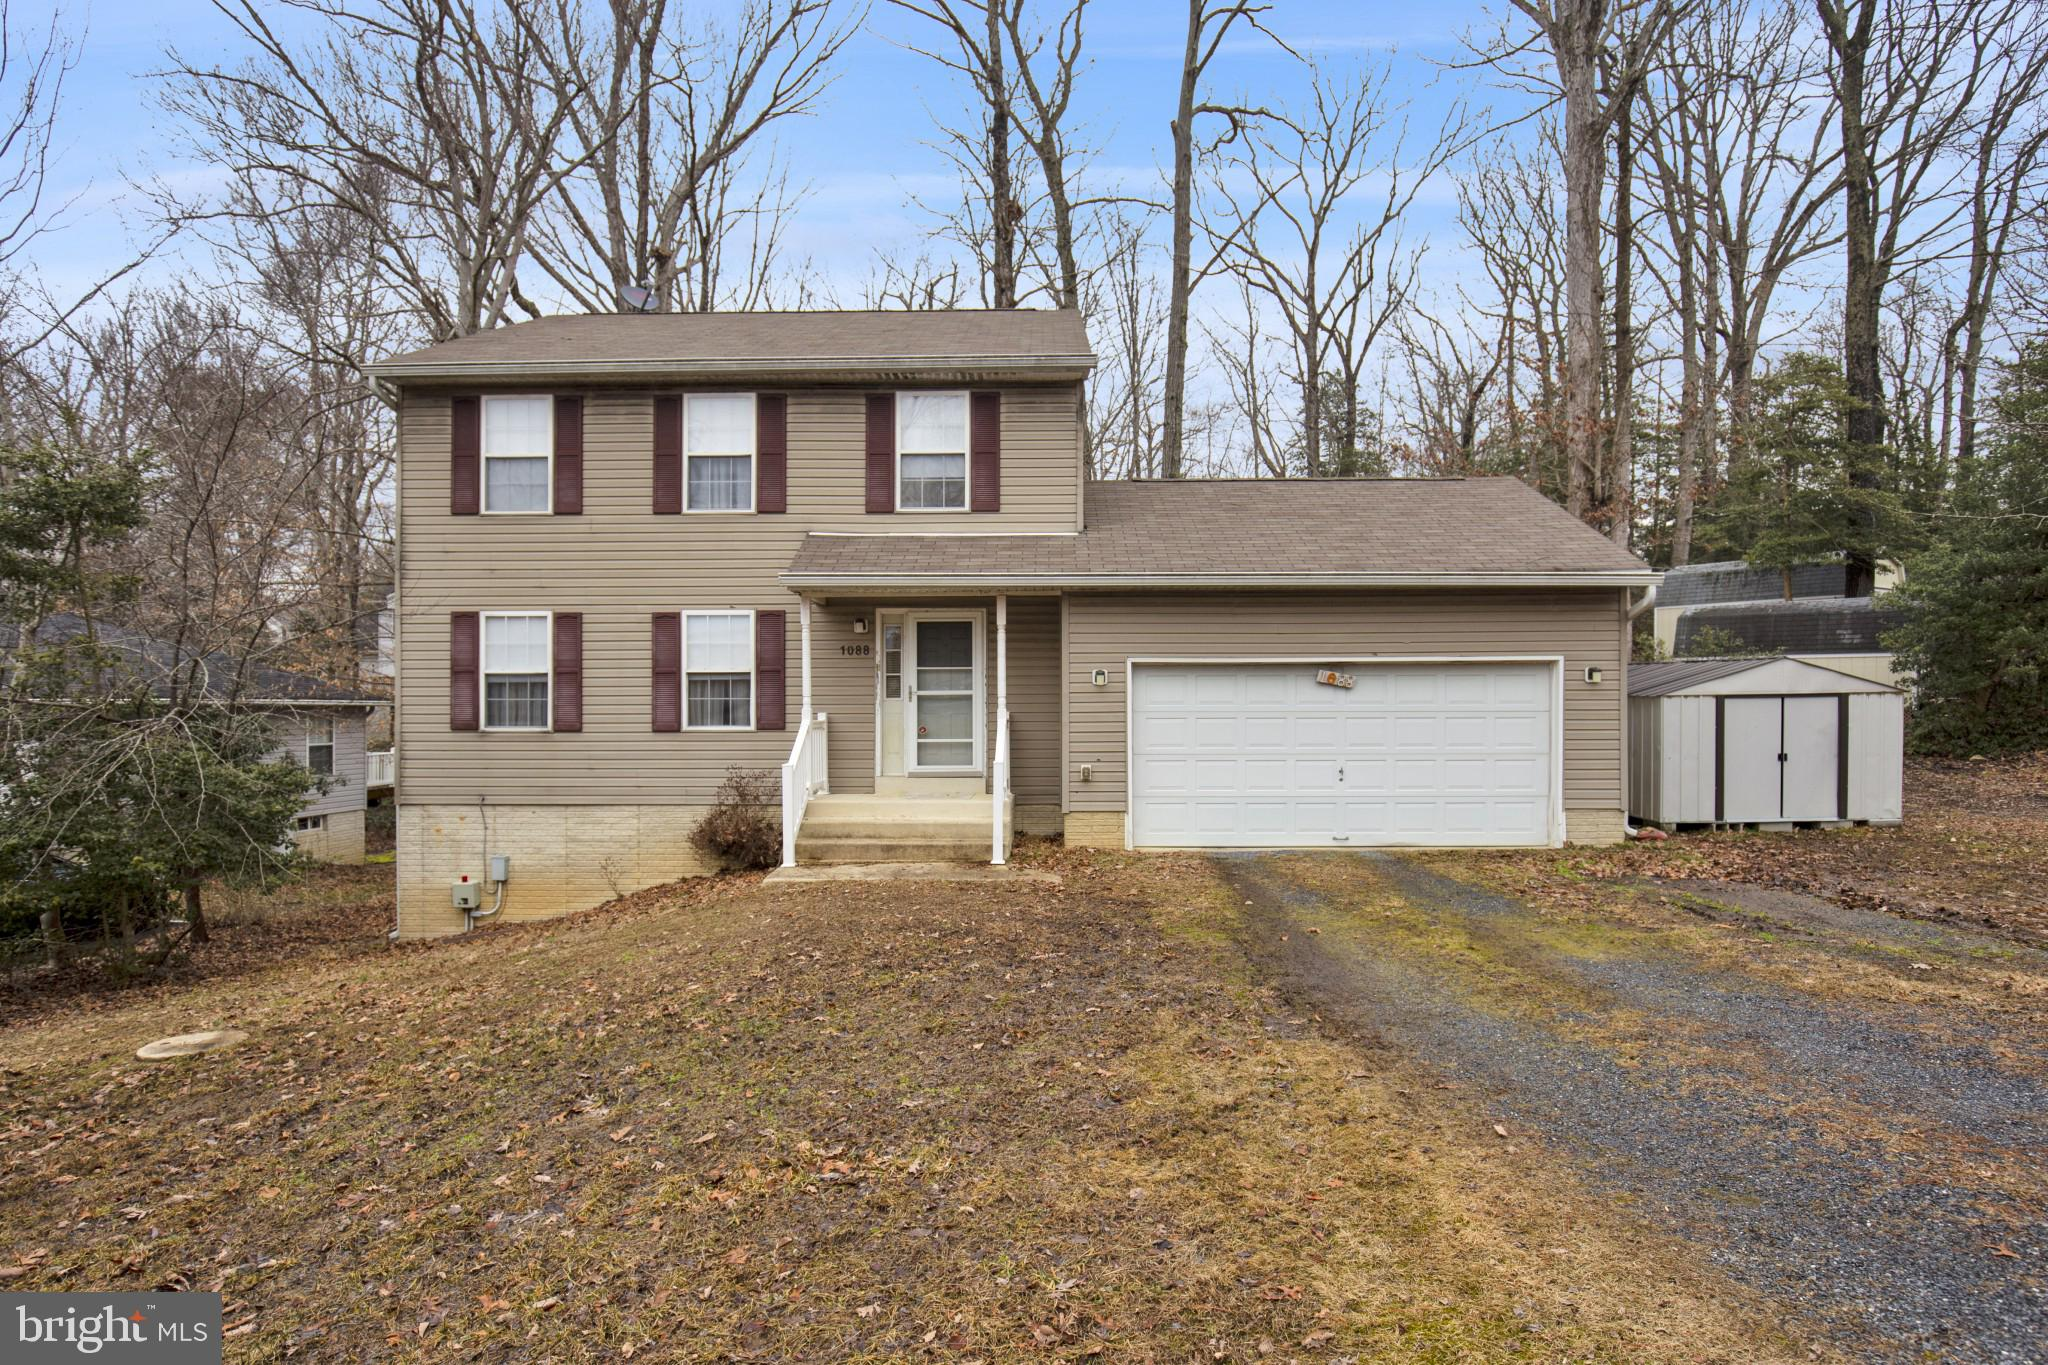 This beautiful colonial on a quiet cul-de-sac has 3 large bedrooms and 2 bathrooms (including the pr